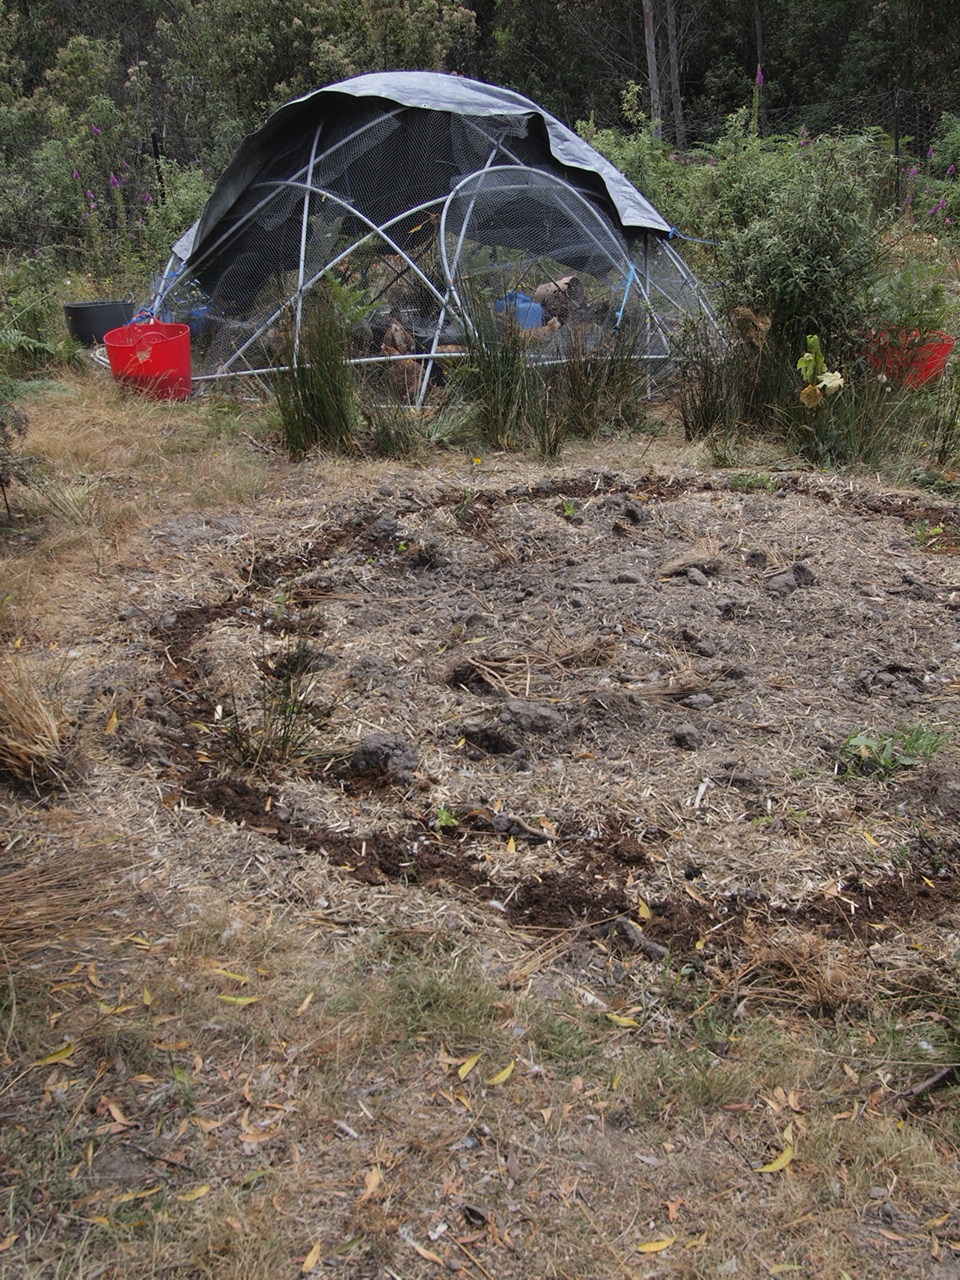 Chook dome and circular garden bed